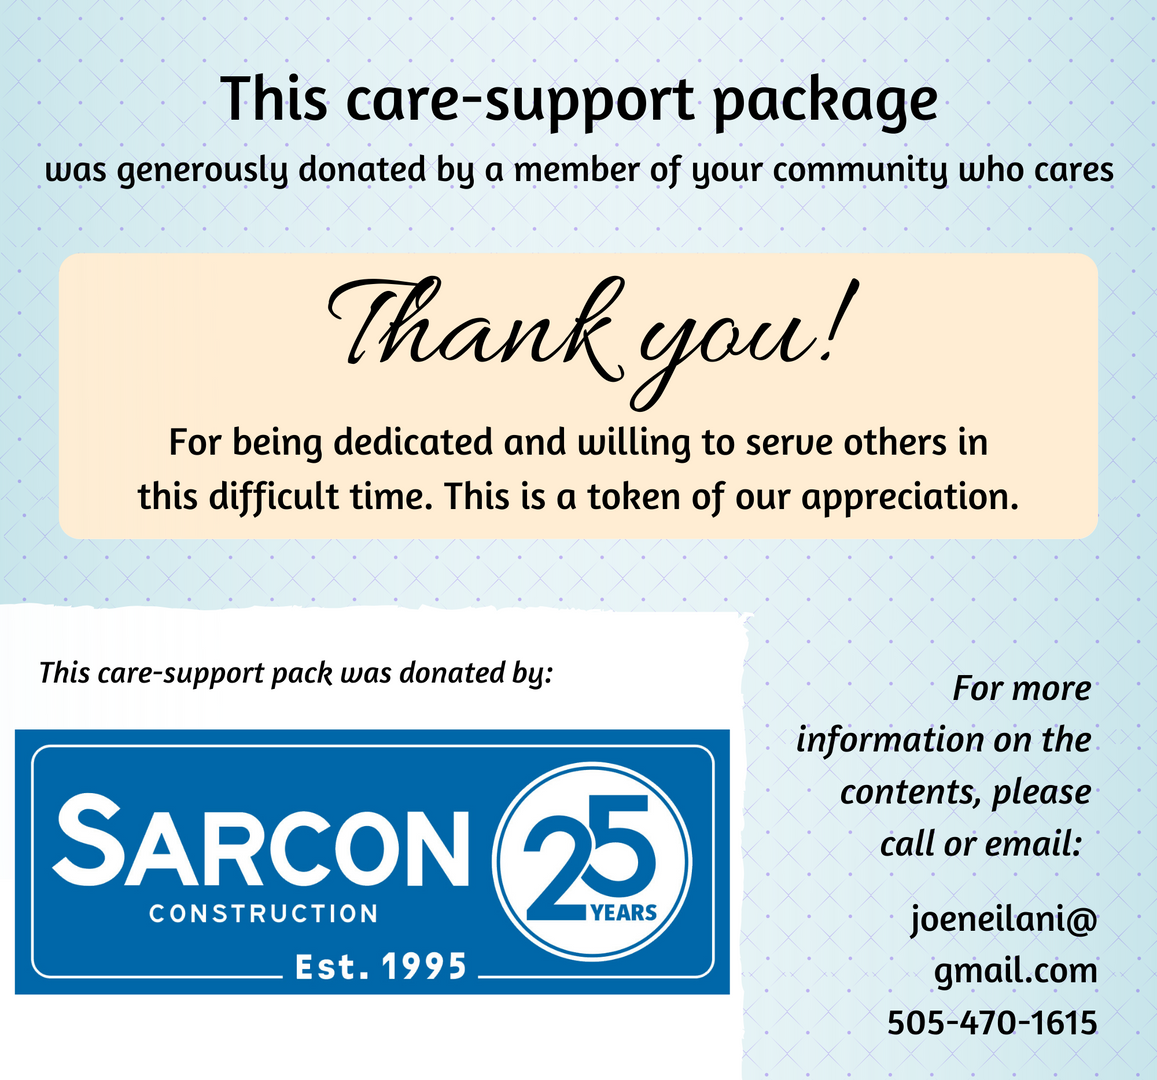 sarcon-6.png